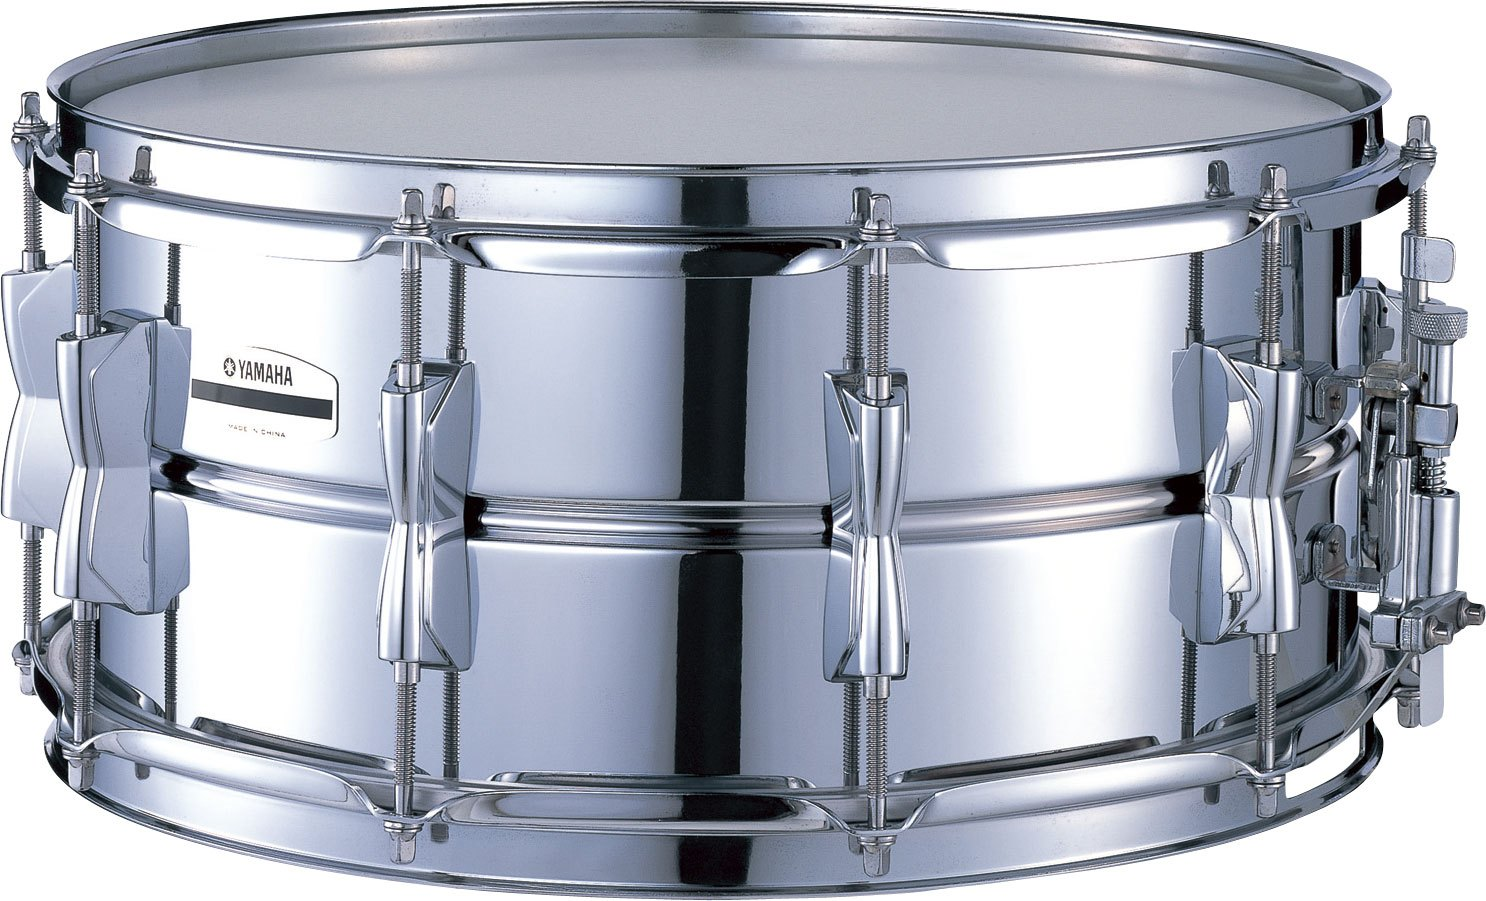 sd 266a overview snare drums acoustic drums drums musical instruments products. Black Bedroom Furniture Sets. Home Design Ideas